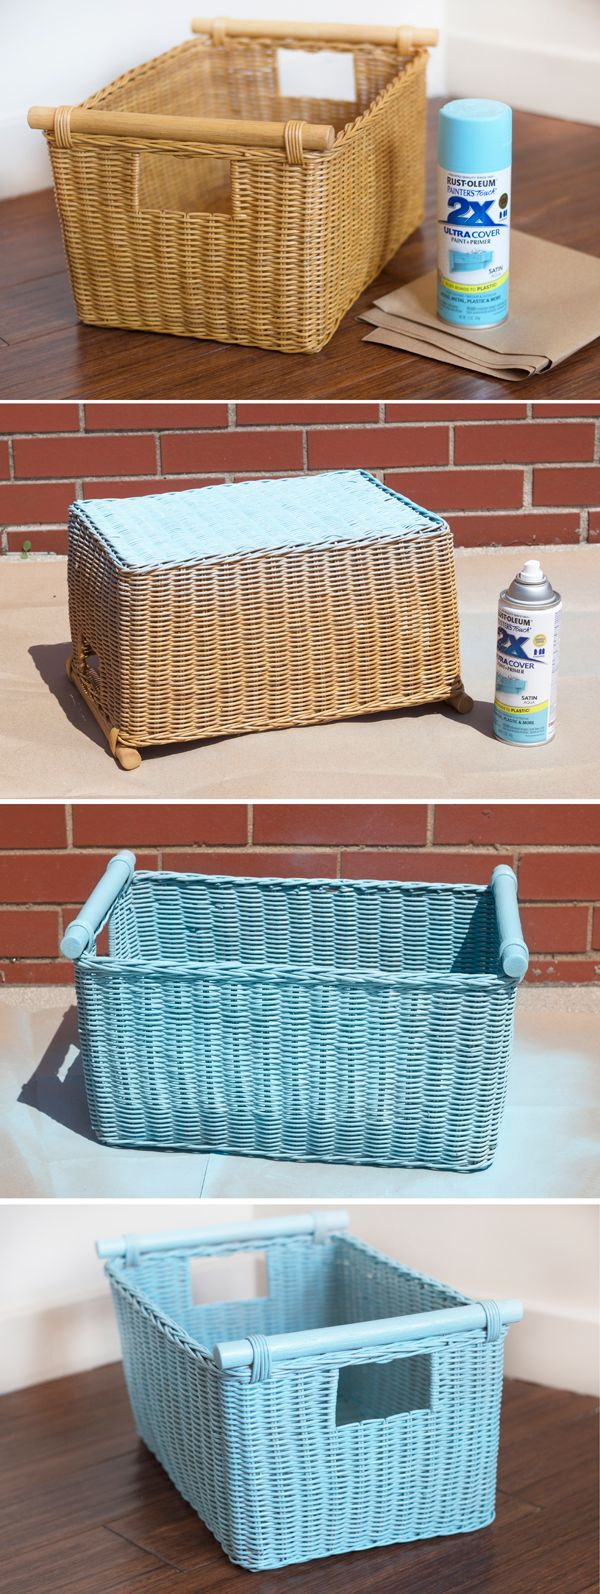 Image result for diy basket spray paint